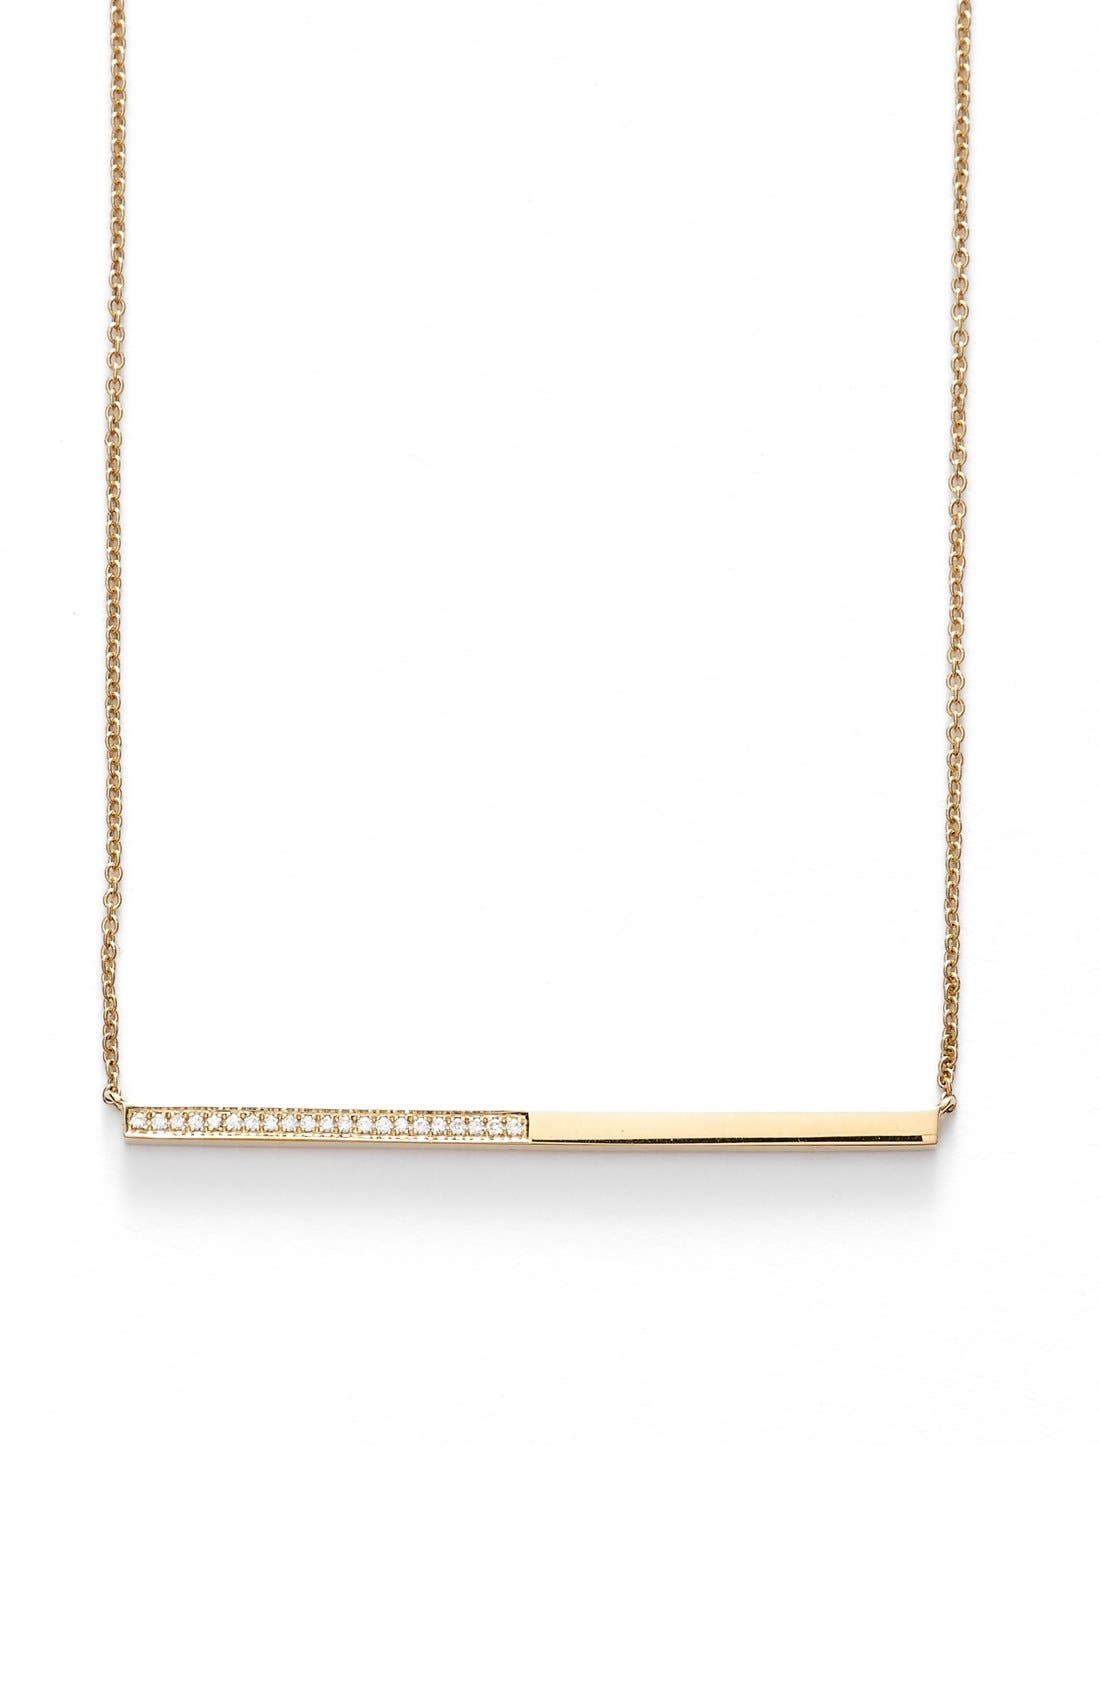 Alternate Image 1 Selected - Bony Levy Diamond Bar Pendant Necklace (Limited Edition) (Nordstrom Exclusive)